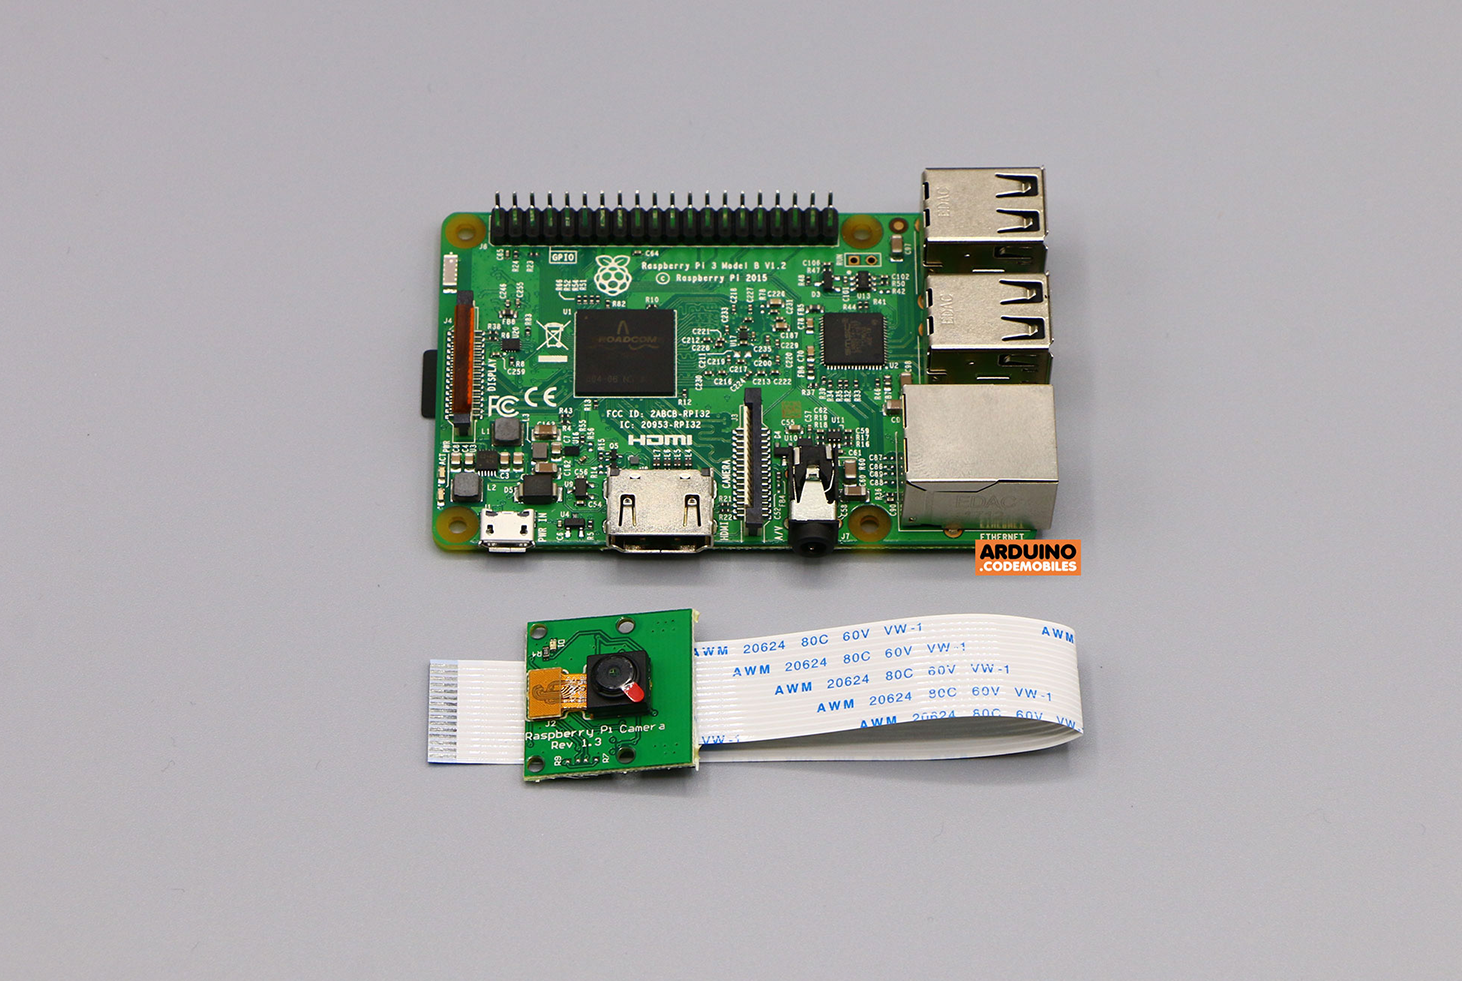 Raspberry Pi 3 Model B+ with CameraPi (non official)